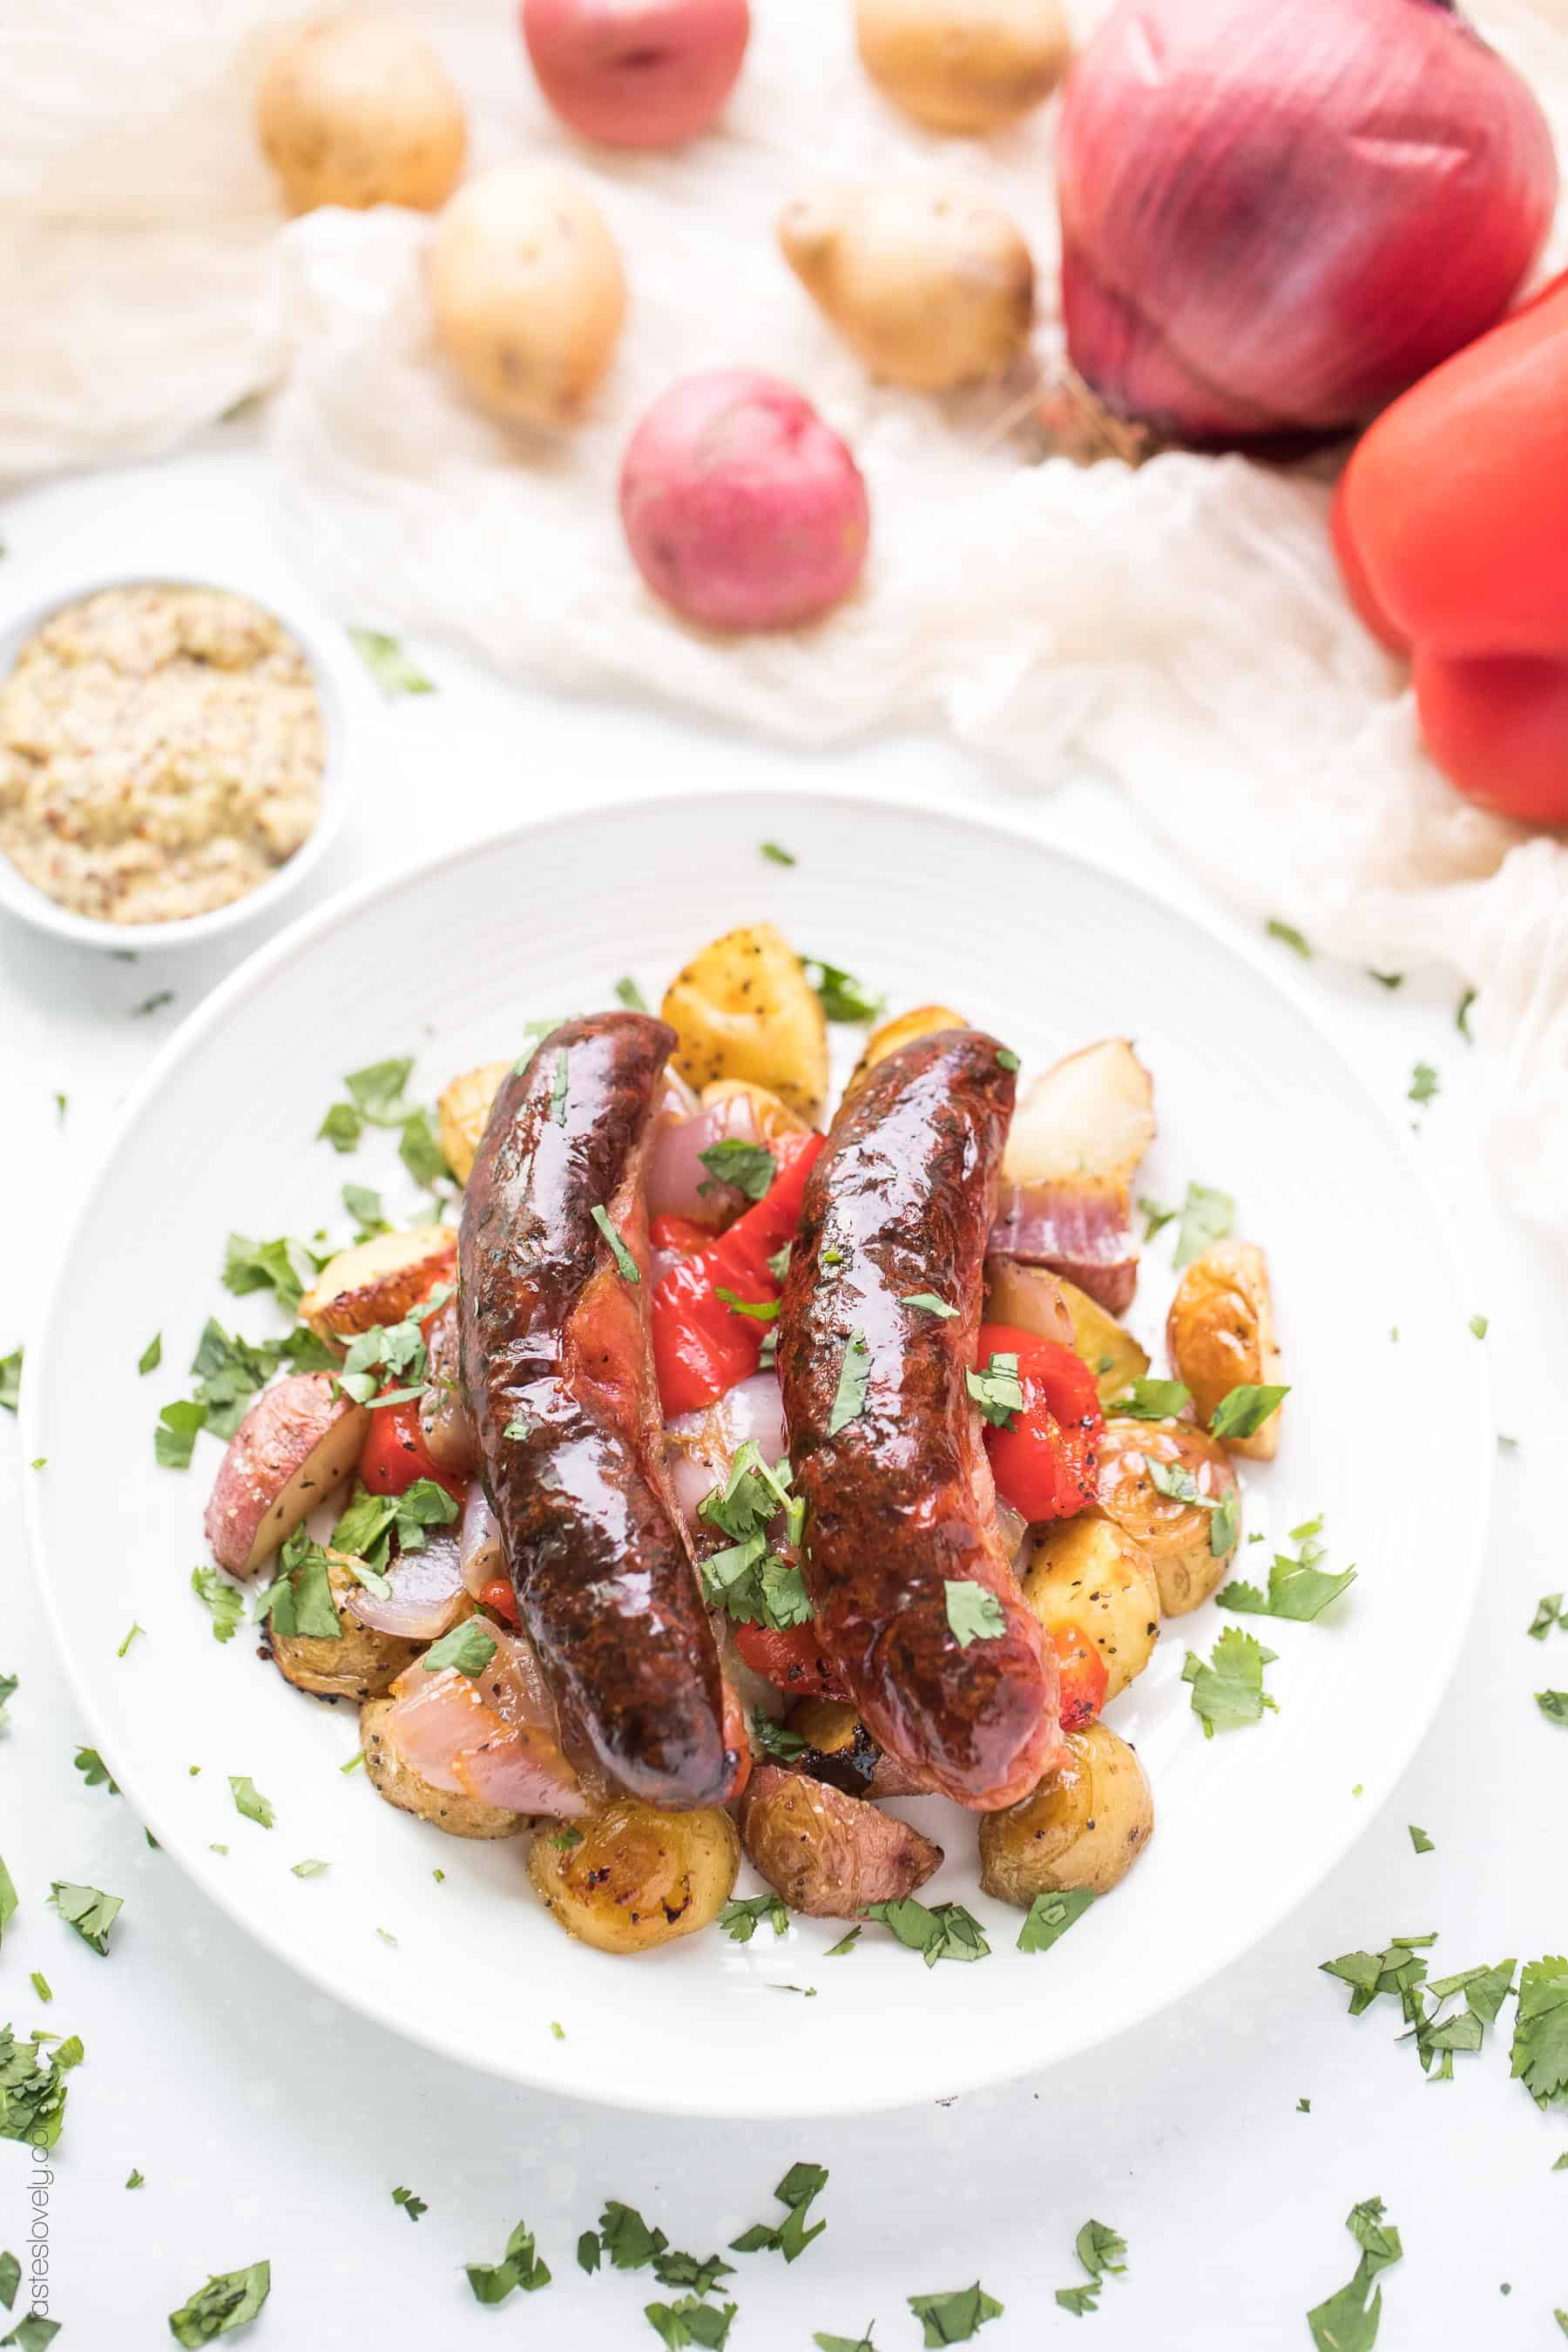 Paleo + Whole30 Sheet Pan Sausage, Bell Pepper and Potato Roast - a super quick and healthy breakfast or dinner recipe! Just 10 minutes of prep, and the oven does the rest of the work for you. #paleo #whole30 #glutenfree #grainfree #dairyfree #sugarfree #keto #cleaneating #realfood